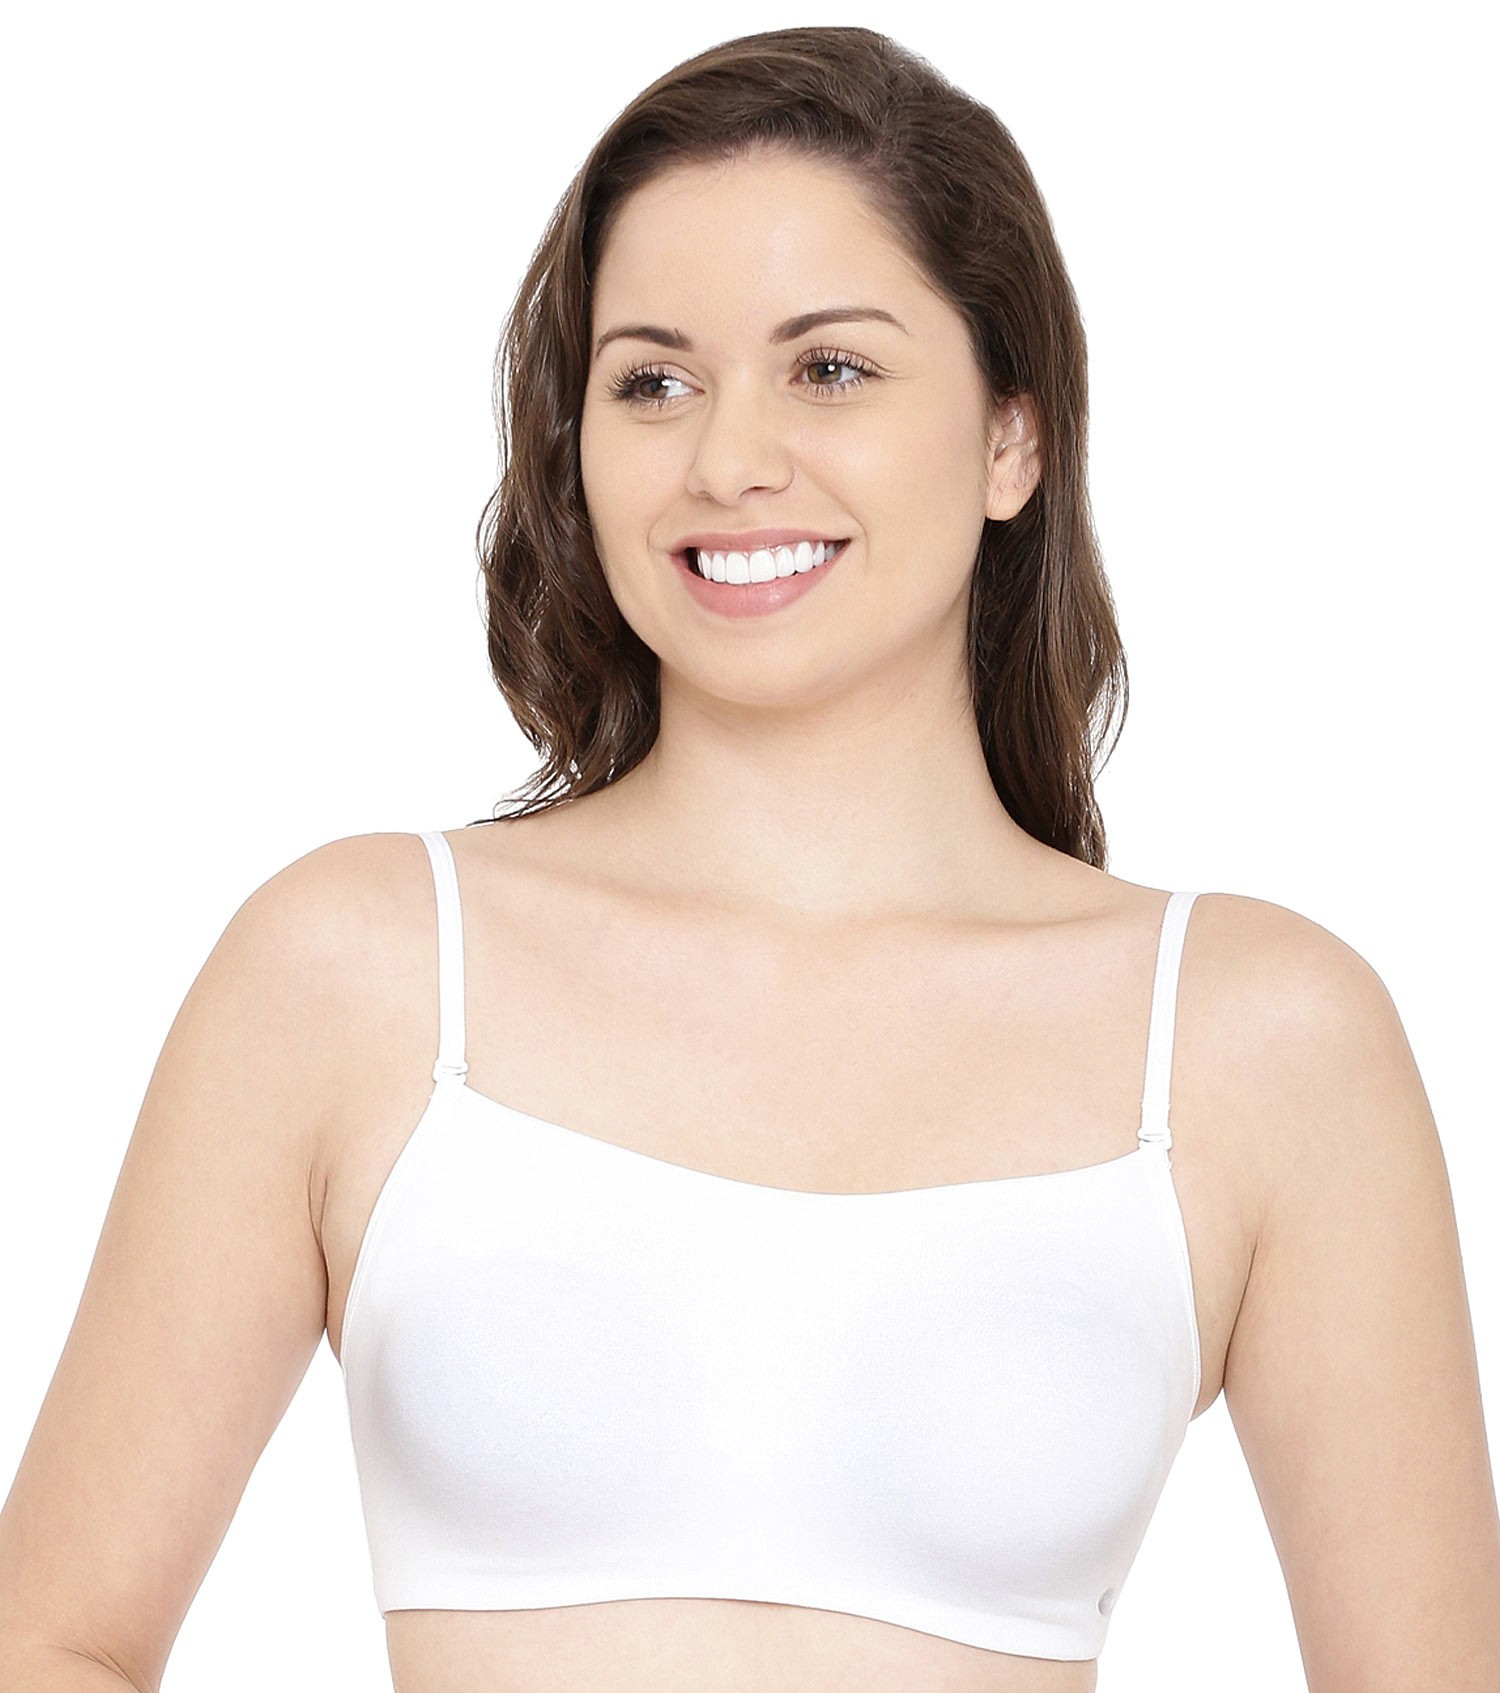 Enamor Women A022 Basic Cotton Bra (L, White)